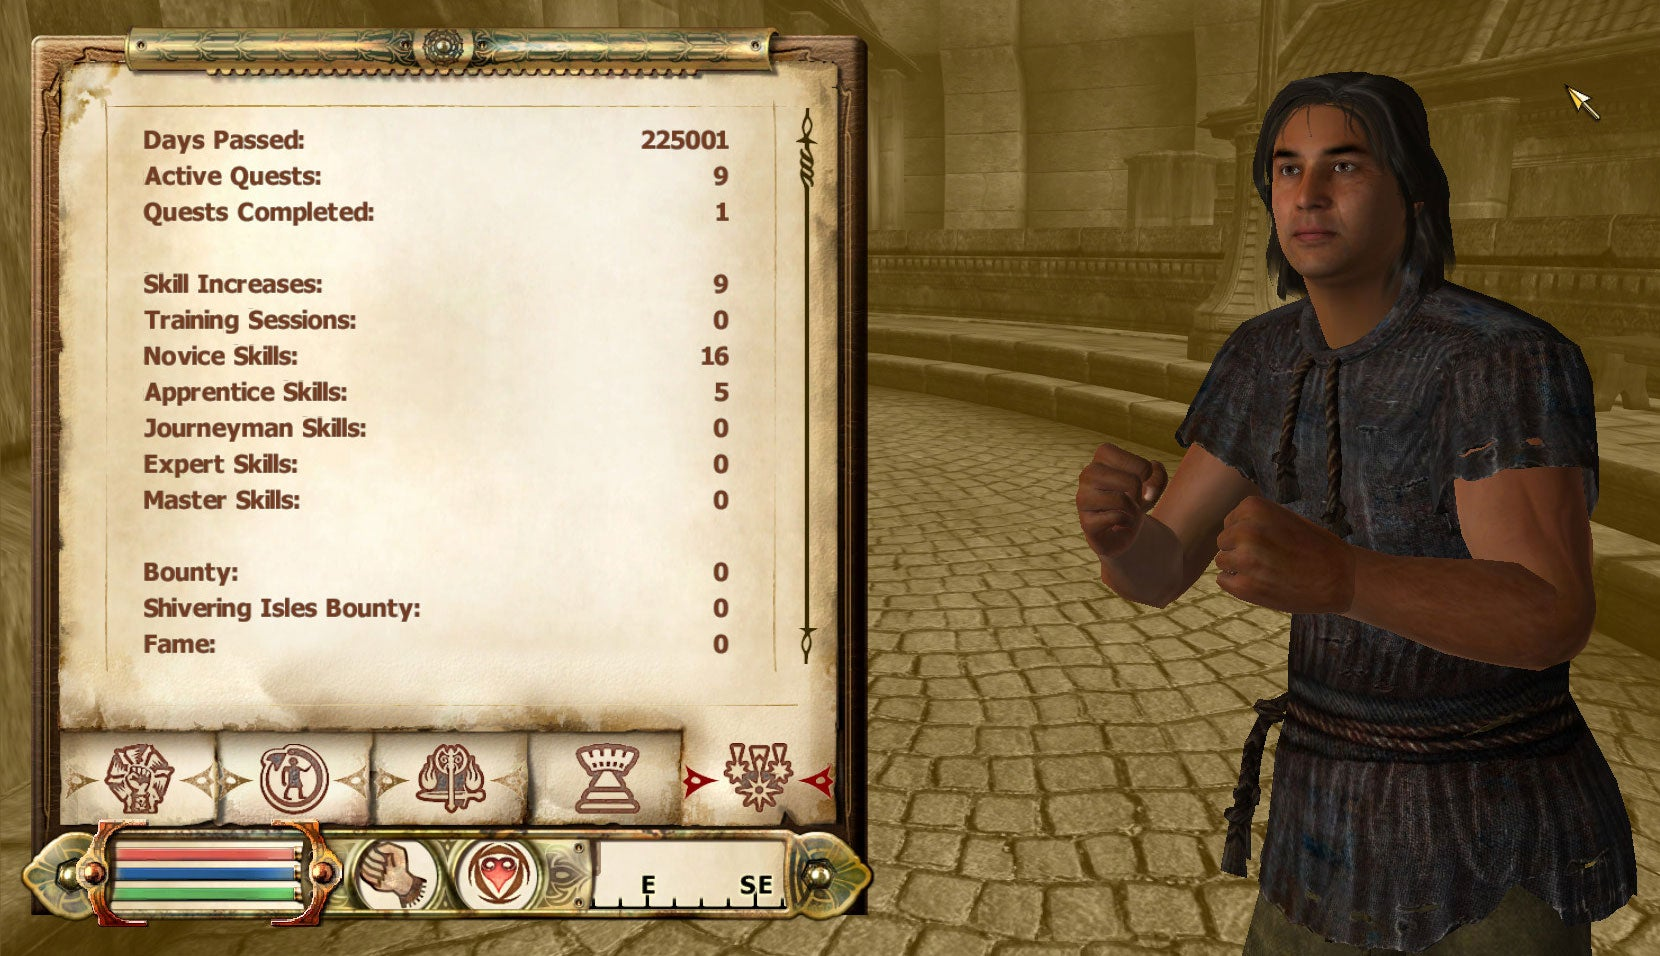 Elder Scrolls Player Casually Spends 600 Years In Prison